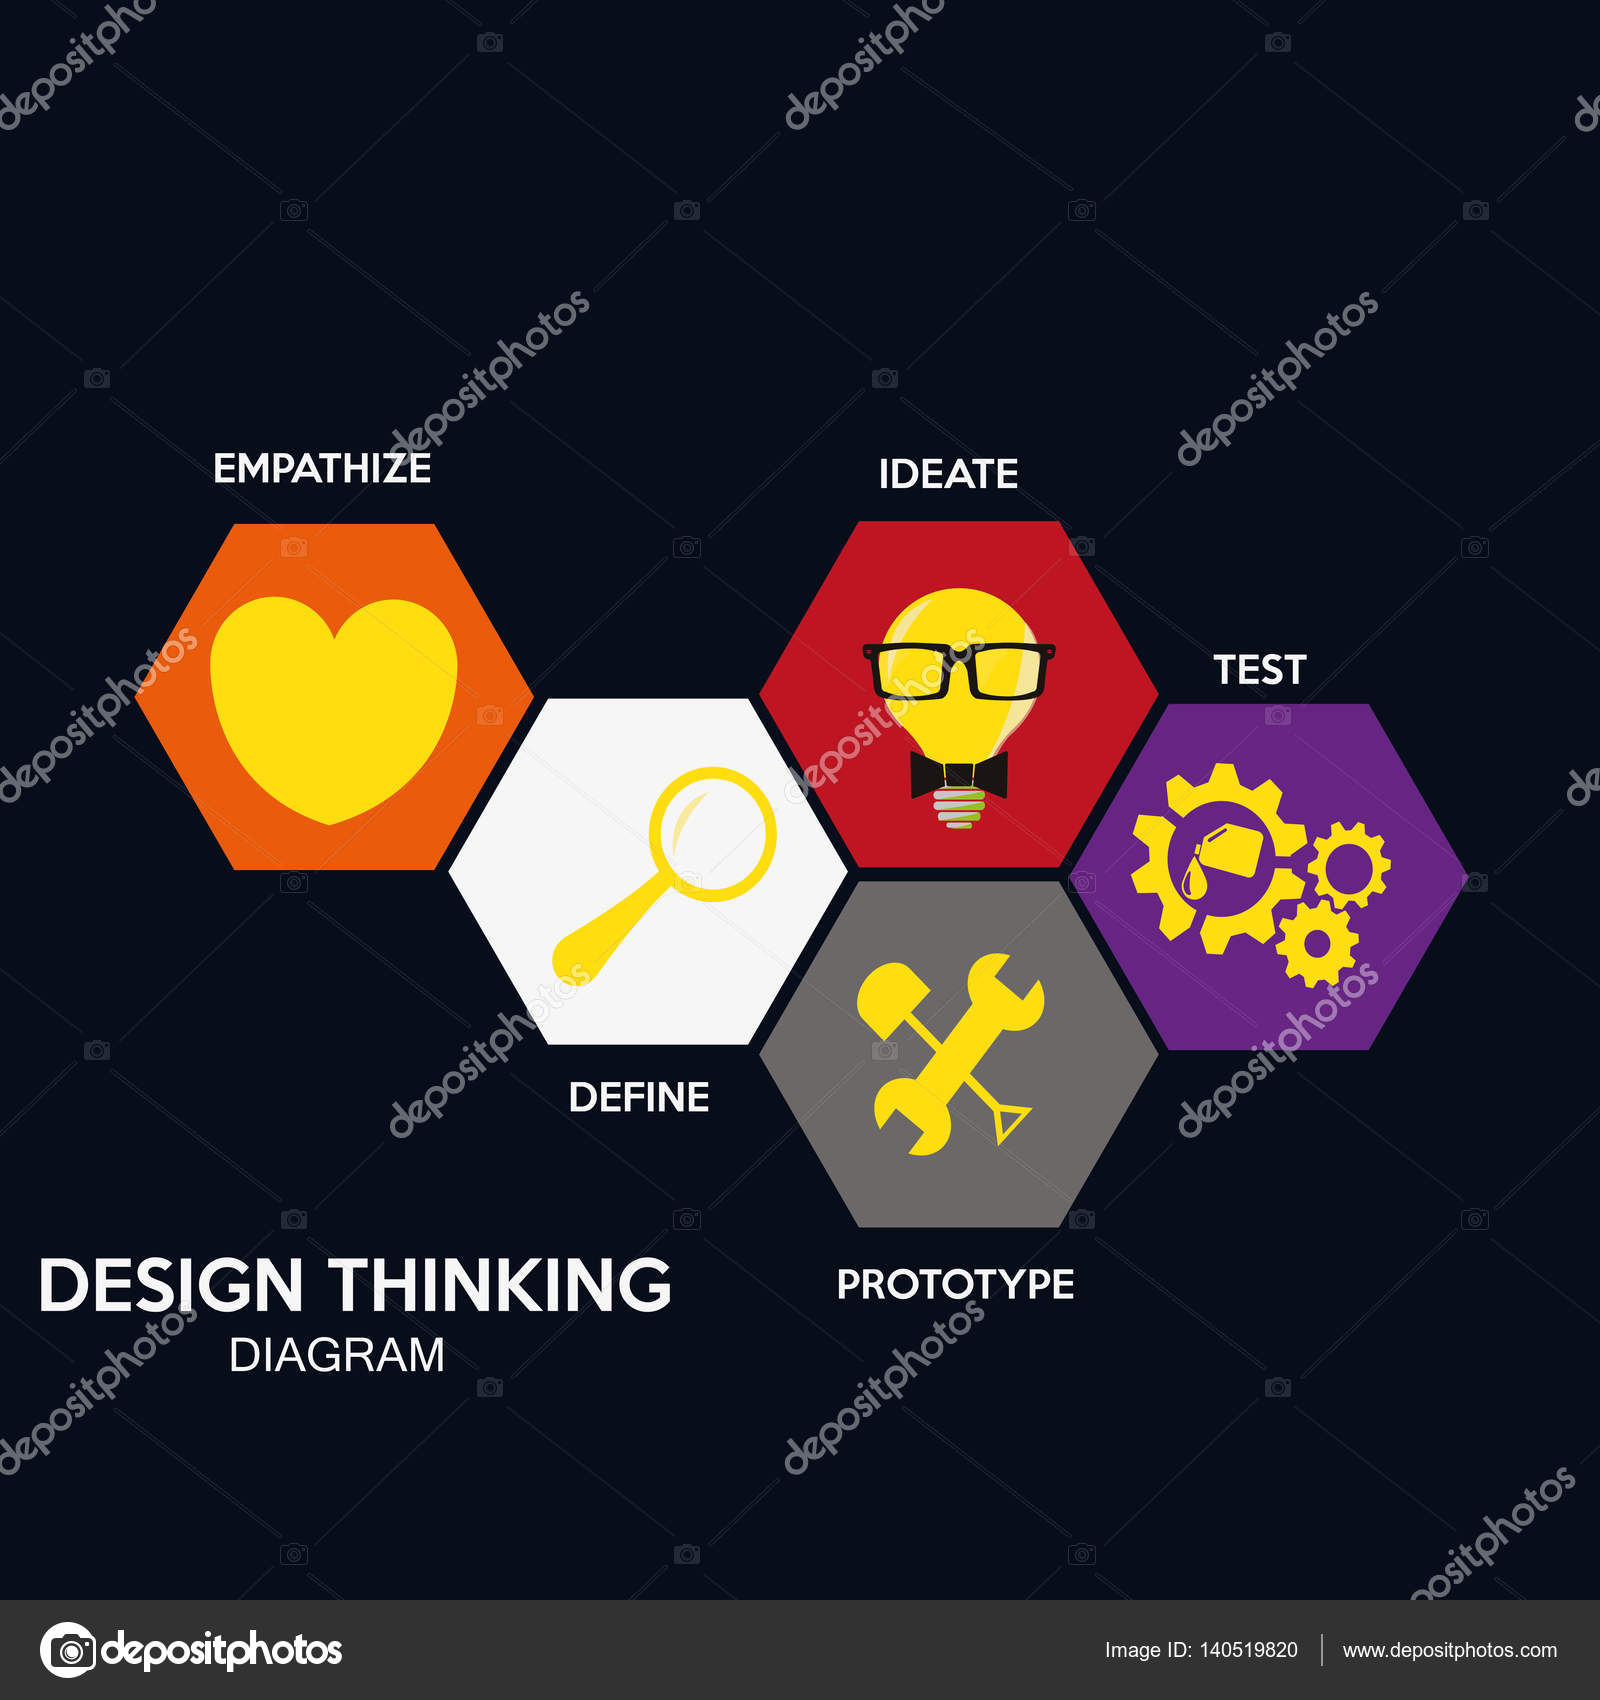 Design thinking diagram illustration icons over colored hexagon design thinking diagram illustration icons over colored hexagon stock vector pooptronica Image collections